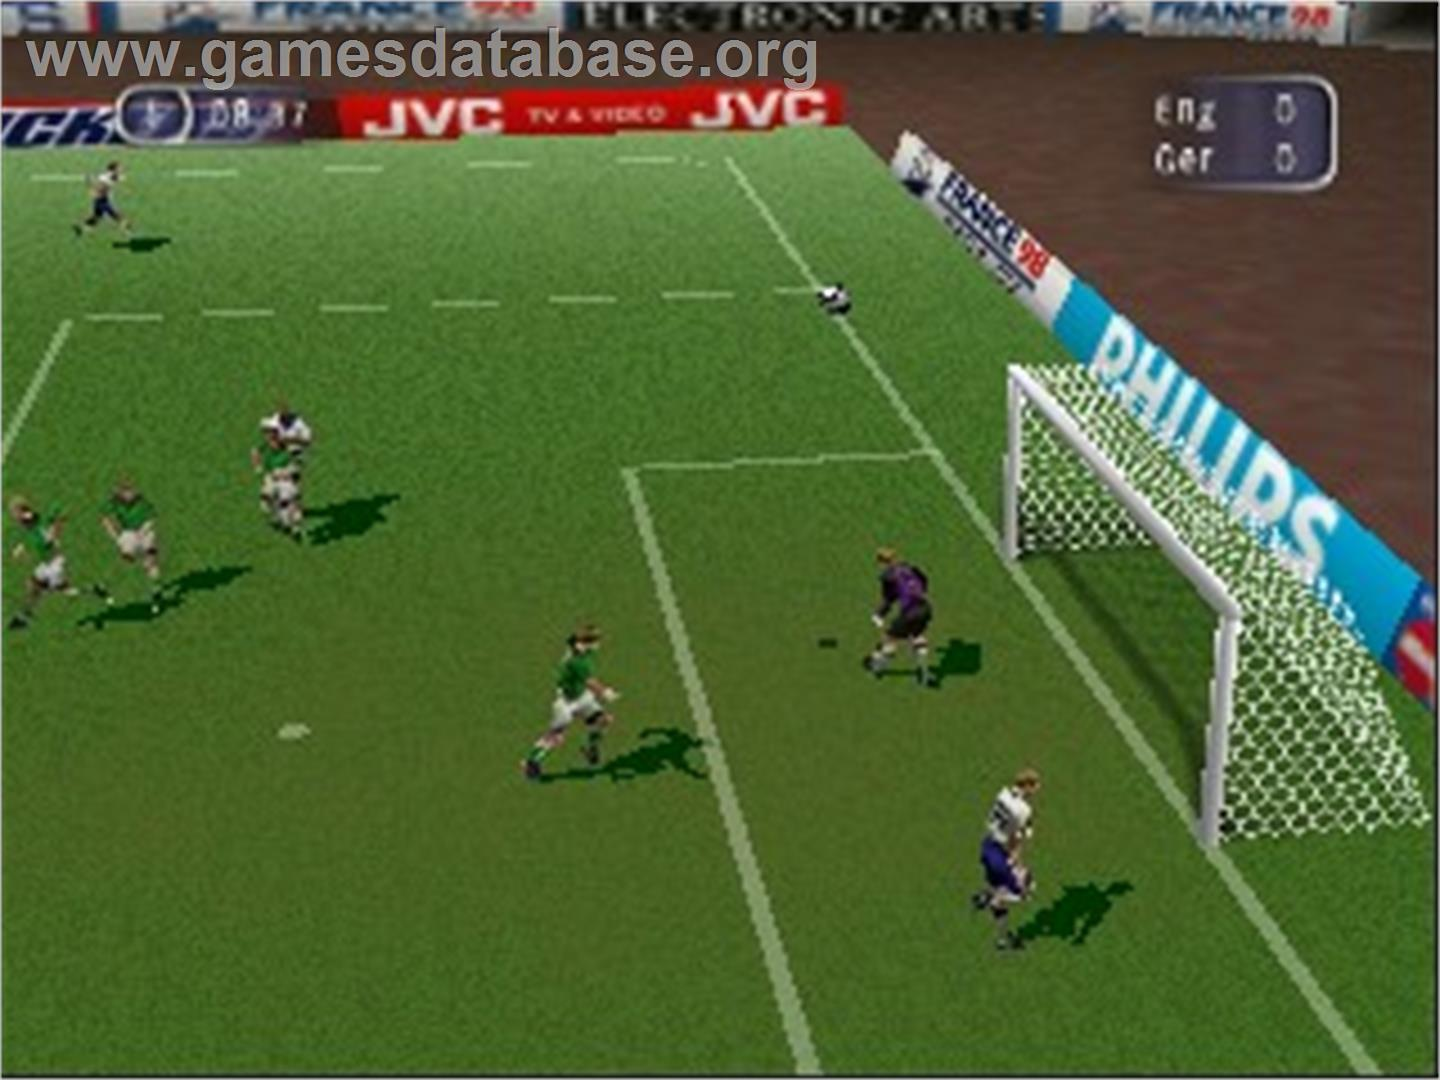 FIFA_98-_Road_to_World_Cup_-_1997_-_Elec